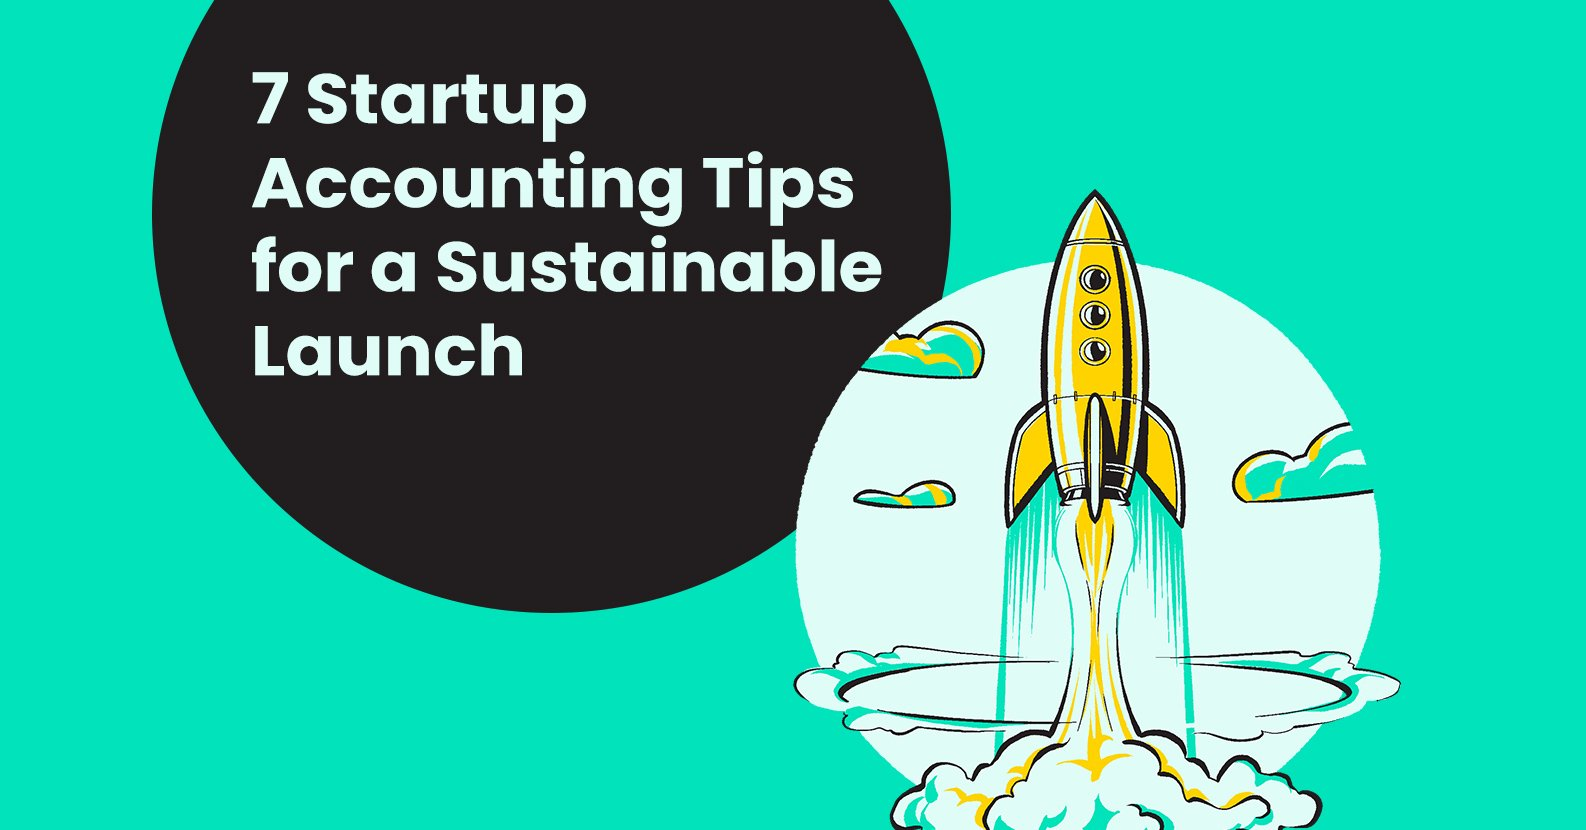 Accounting Tips for a Sustainable Launch